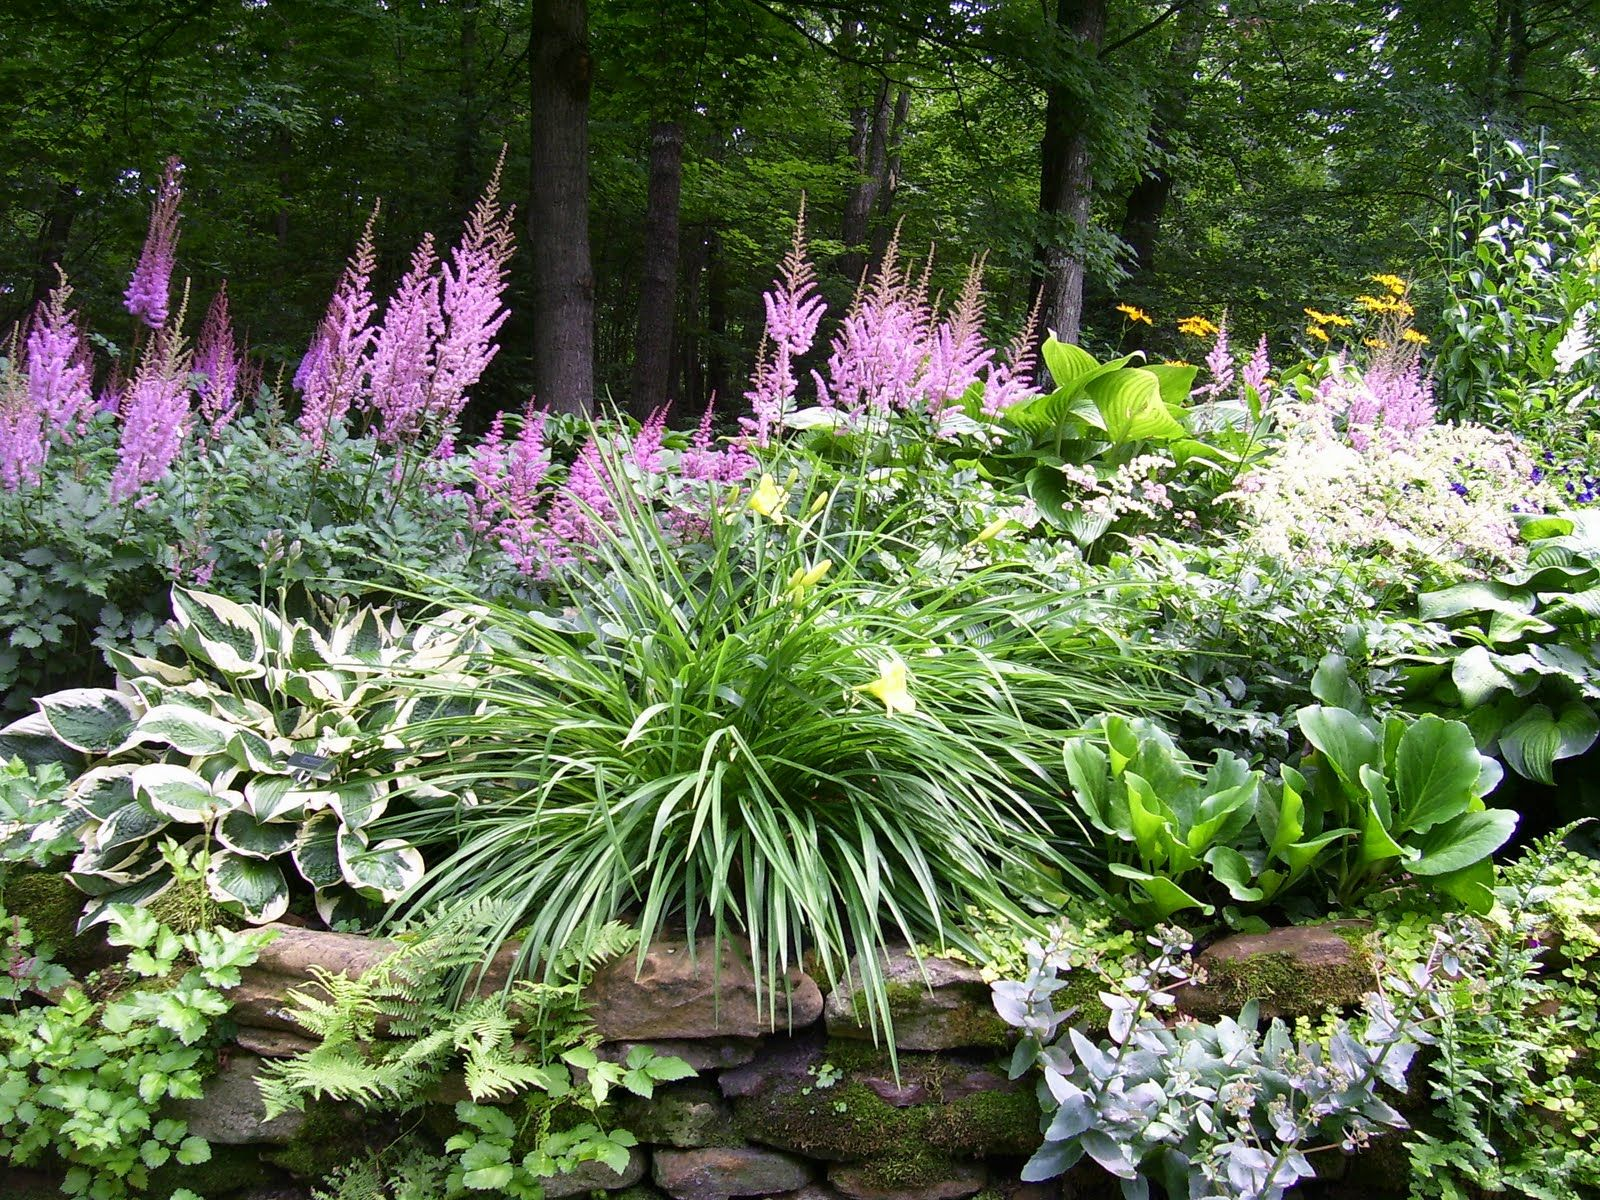 Astilbe and hosta yes my cup of tea tr dg rd garden for Images of landscaping plants